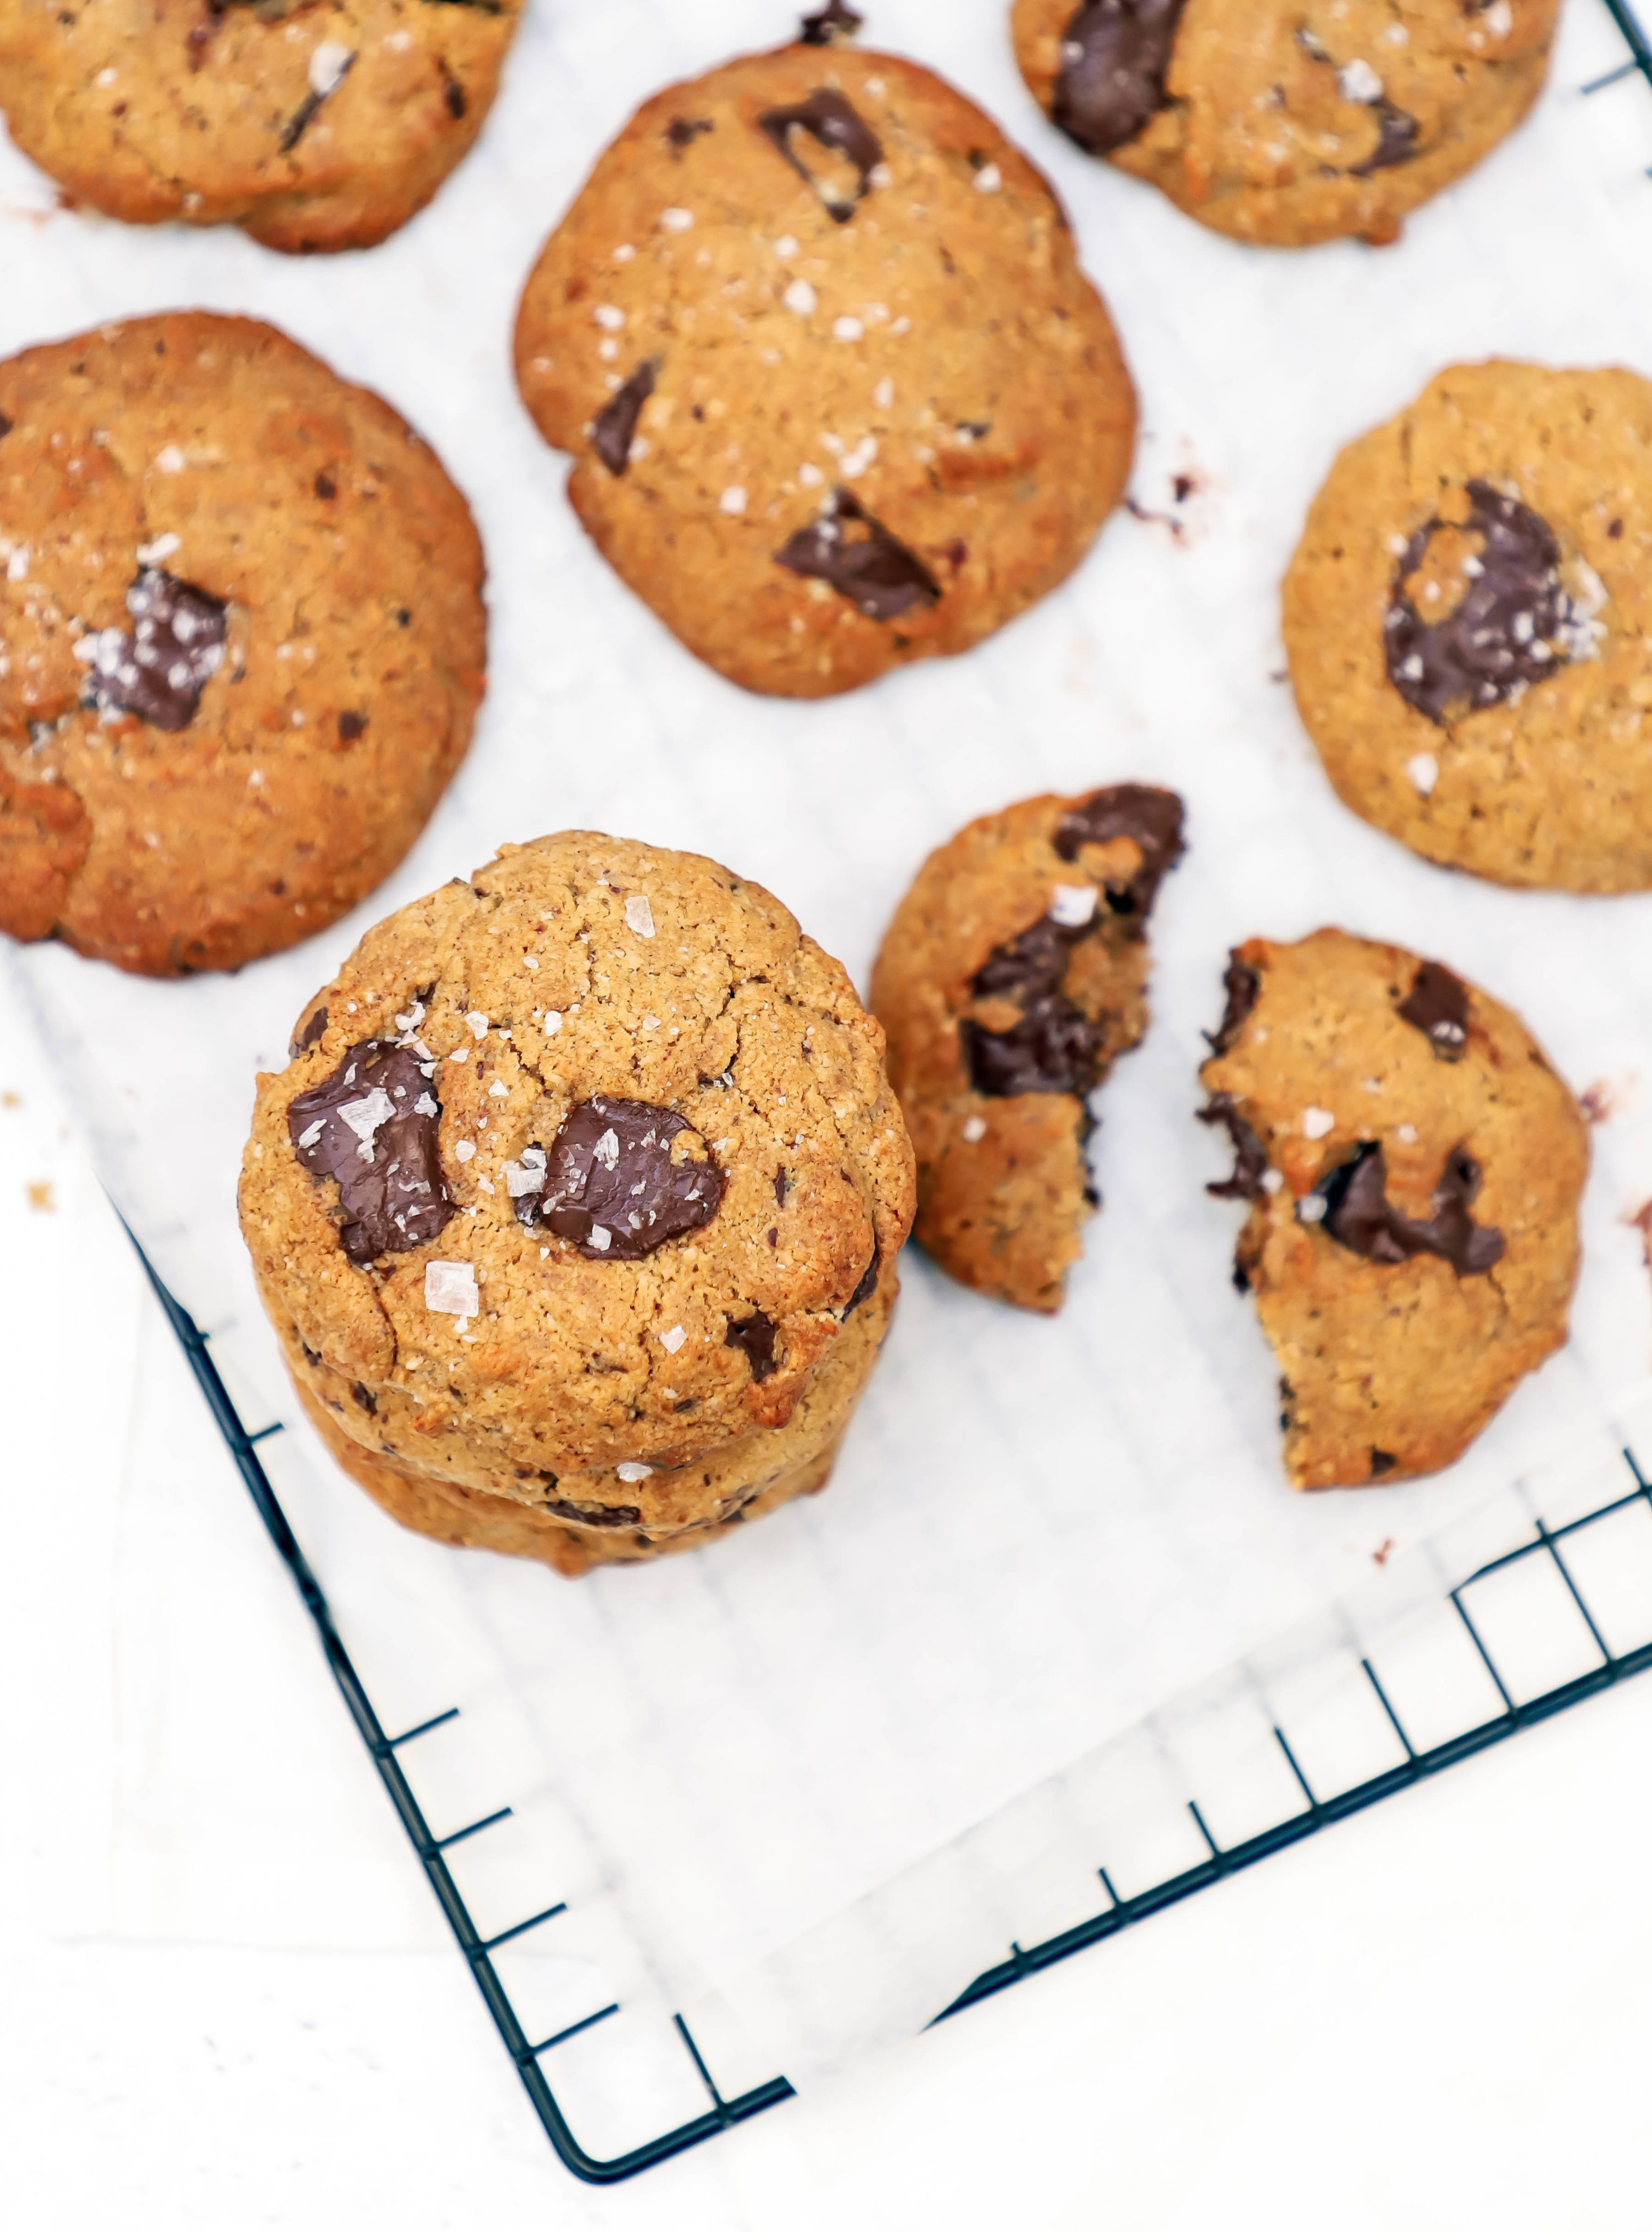 vegan+and+gluten-free+chocolate+chip+cookies+with+tahini+and+coconut+oil%2C+cooling+on+a+grid+sheet+lined+with+parchment+paper